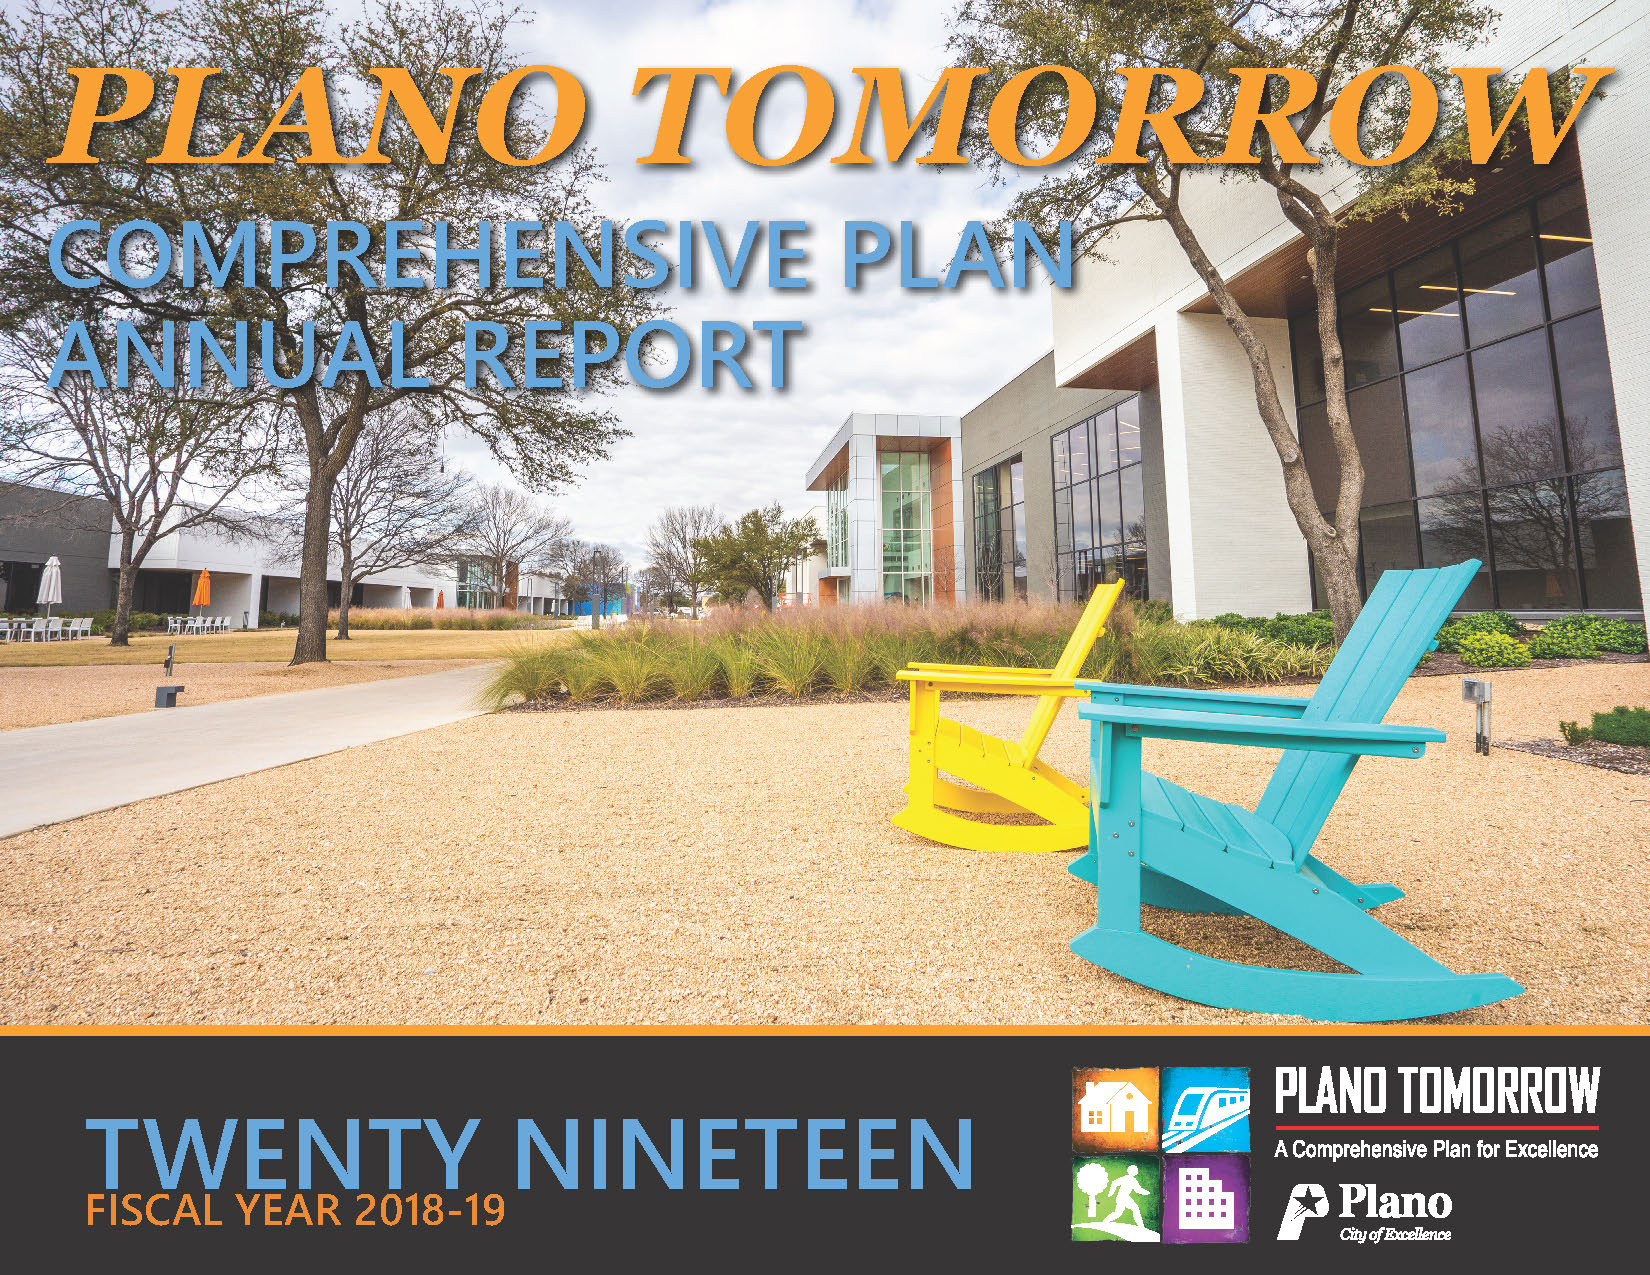 Plano Tomorrow Annual Report